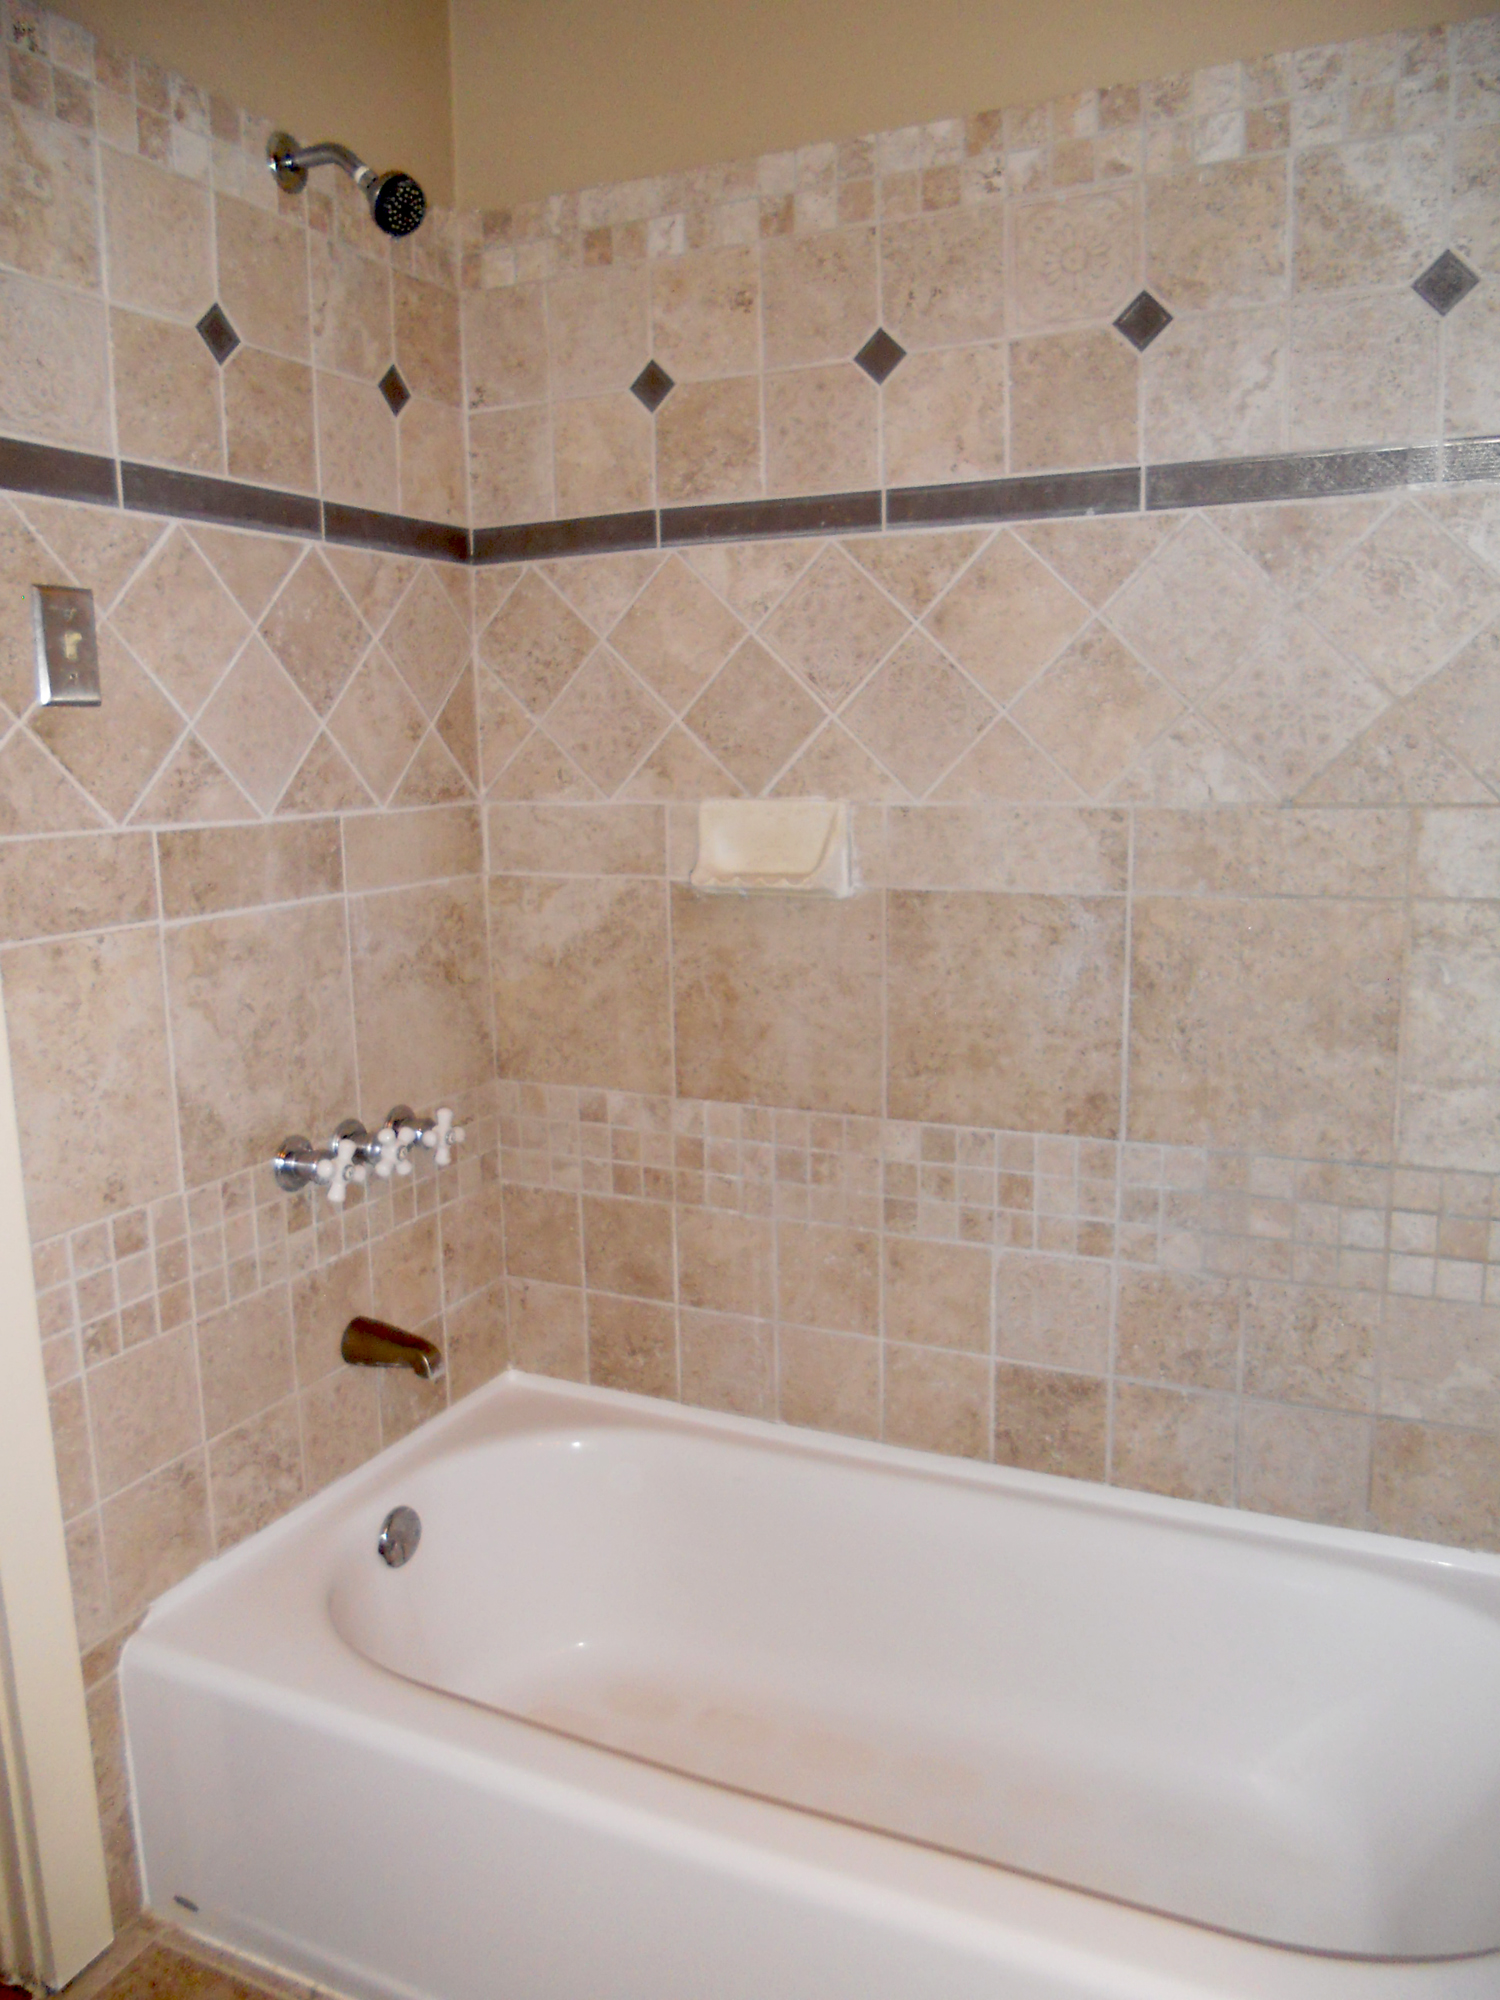 Trend Remodeled hall bathroom new tub and tiled enclosure Gorgeous